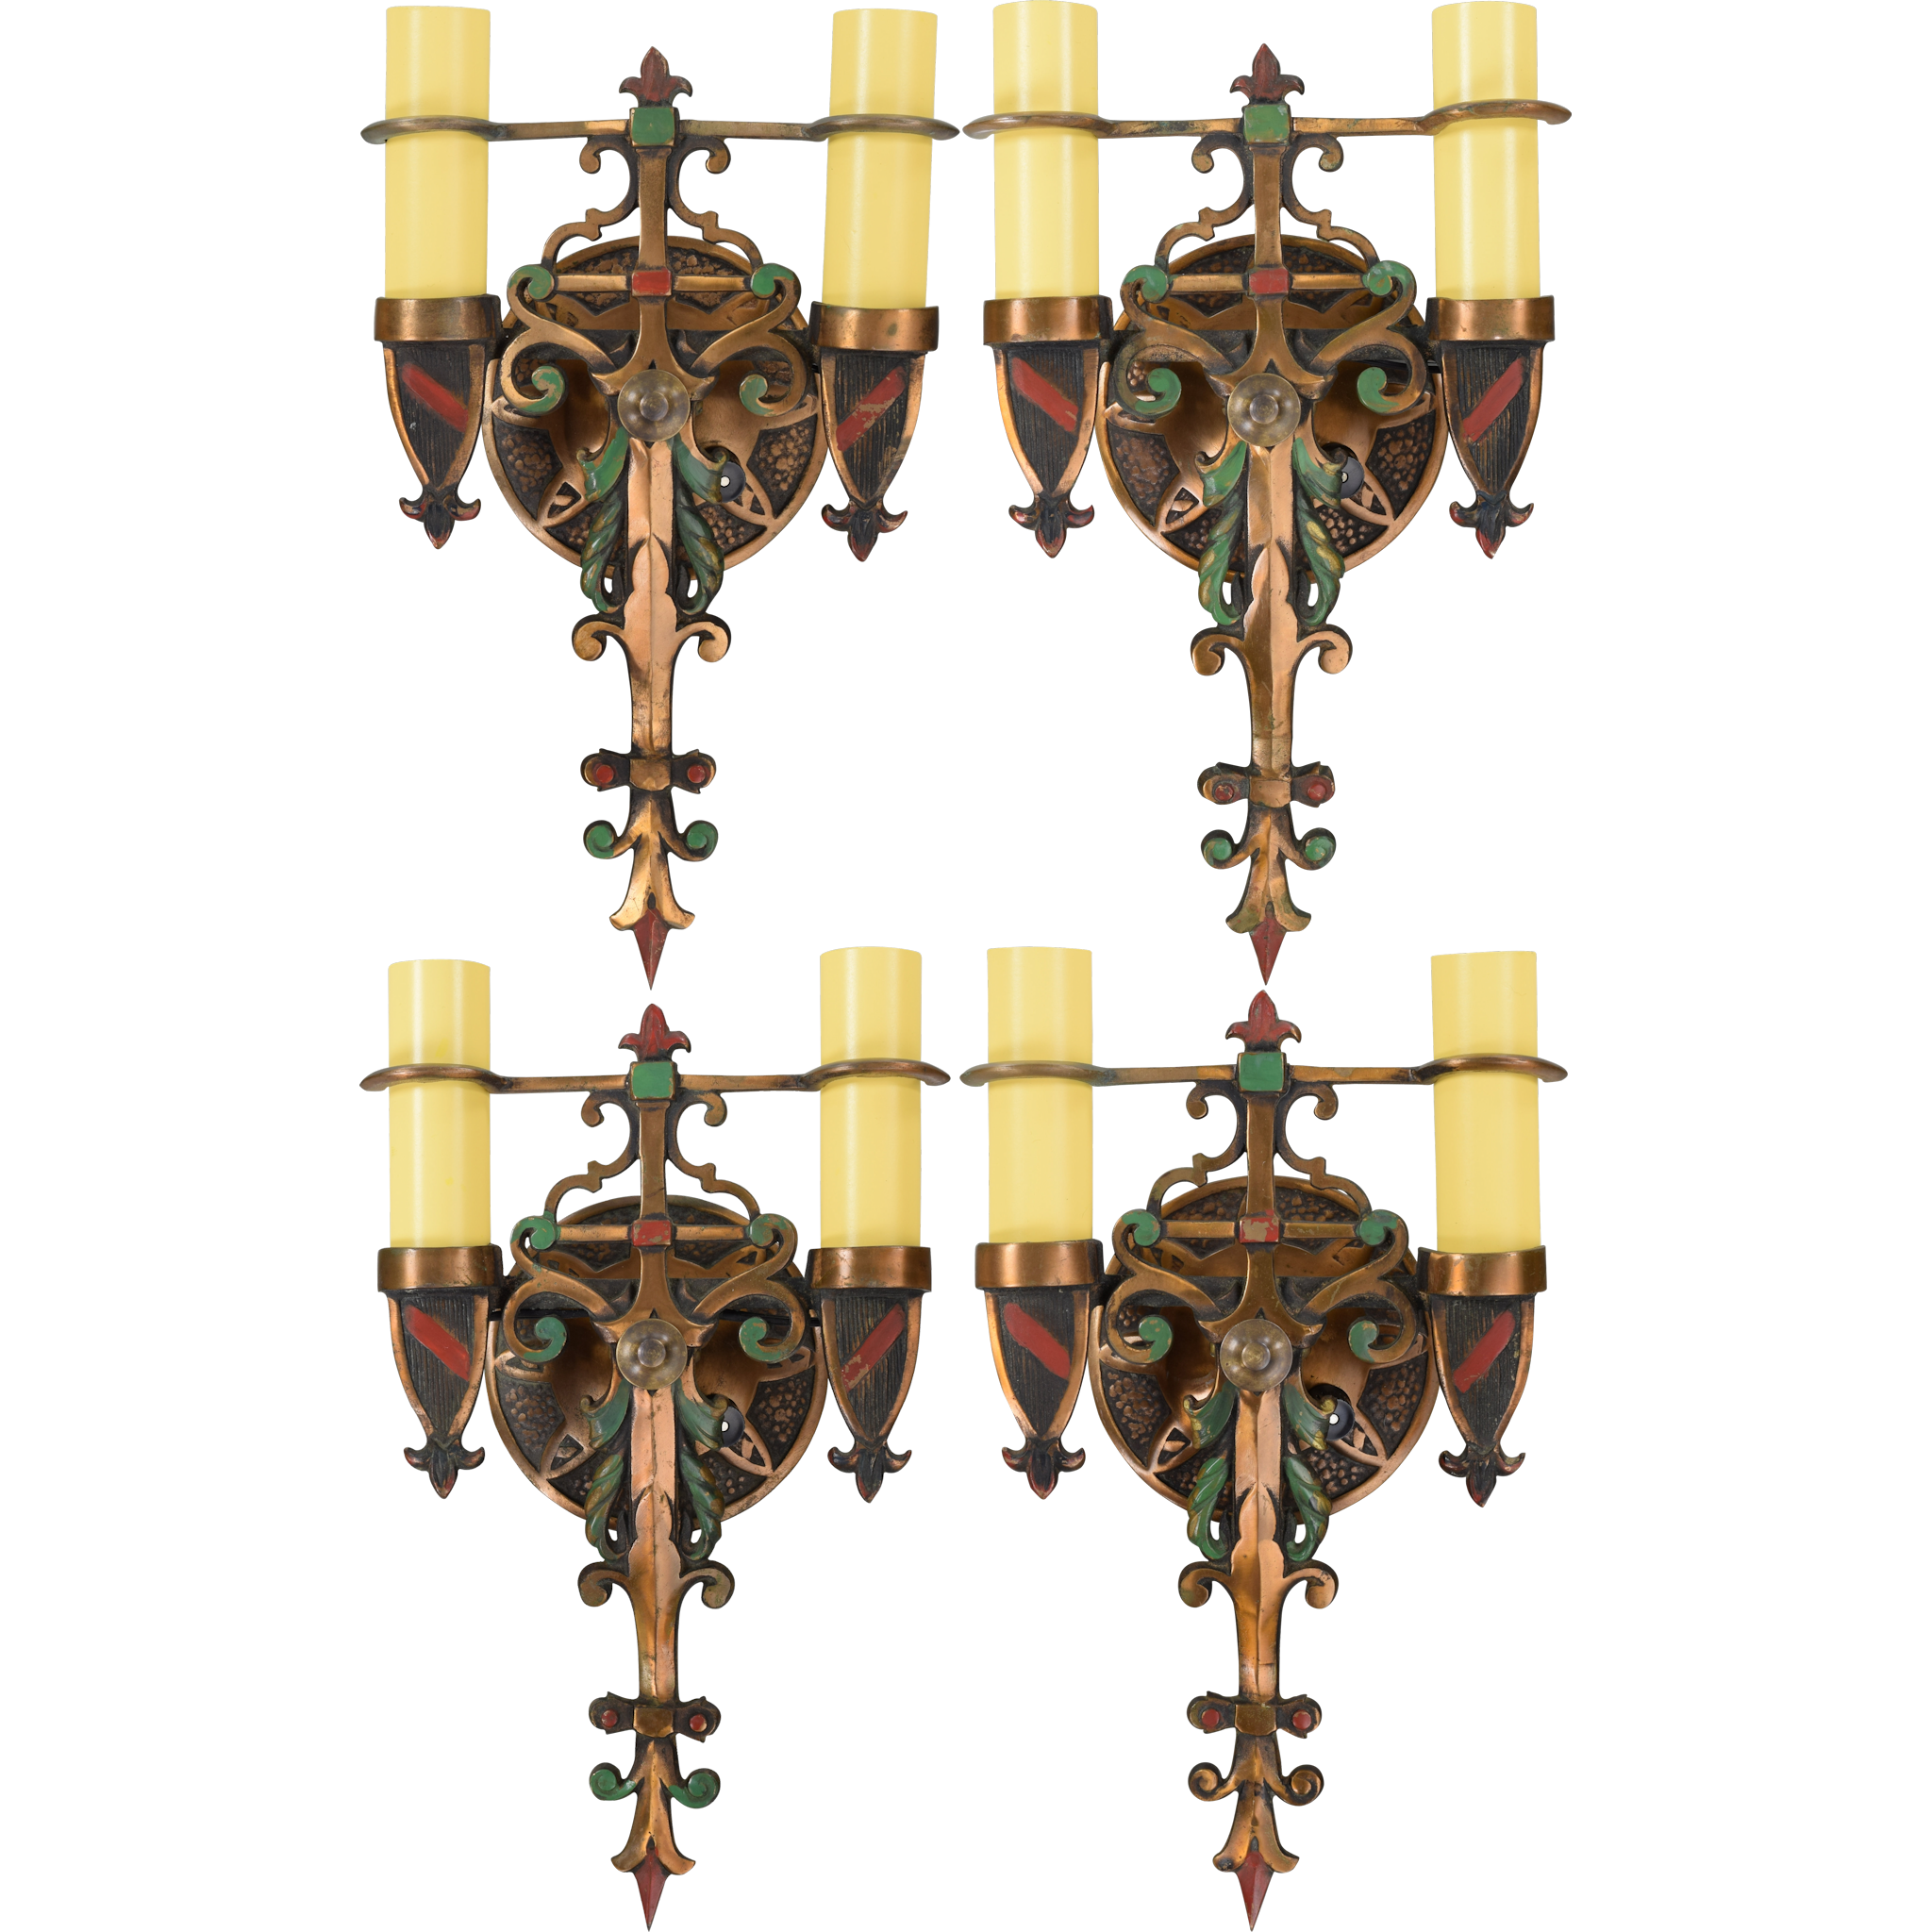 Wall Sconces En Espanol : Set 4 Vintage Spanish Revival Wall Sconces - Polychrome Bronze from tolw on Ruby Lane